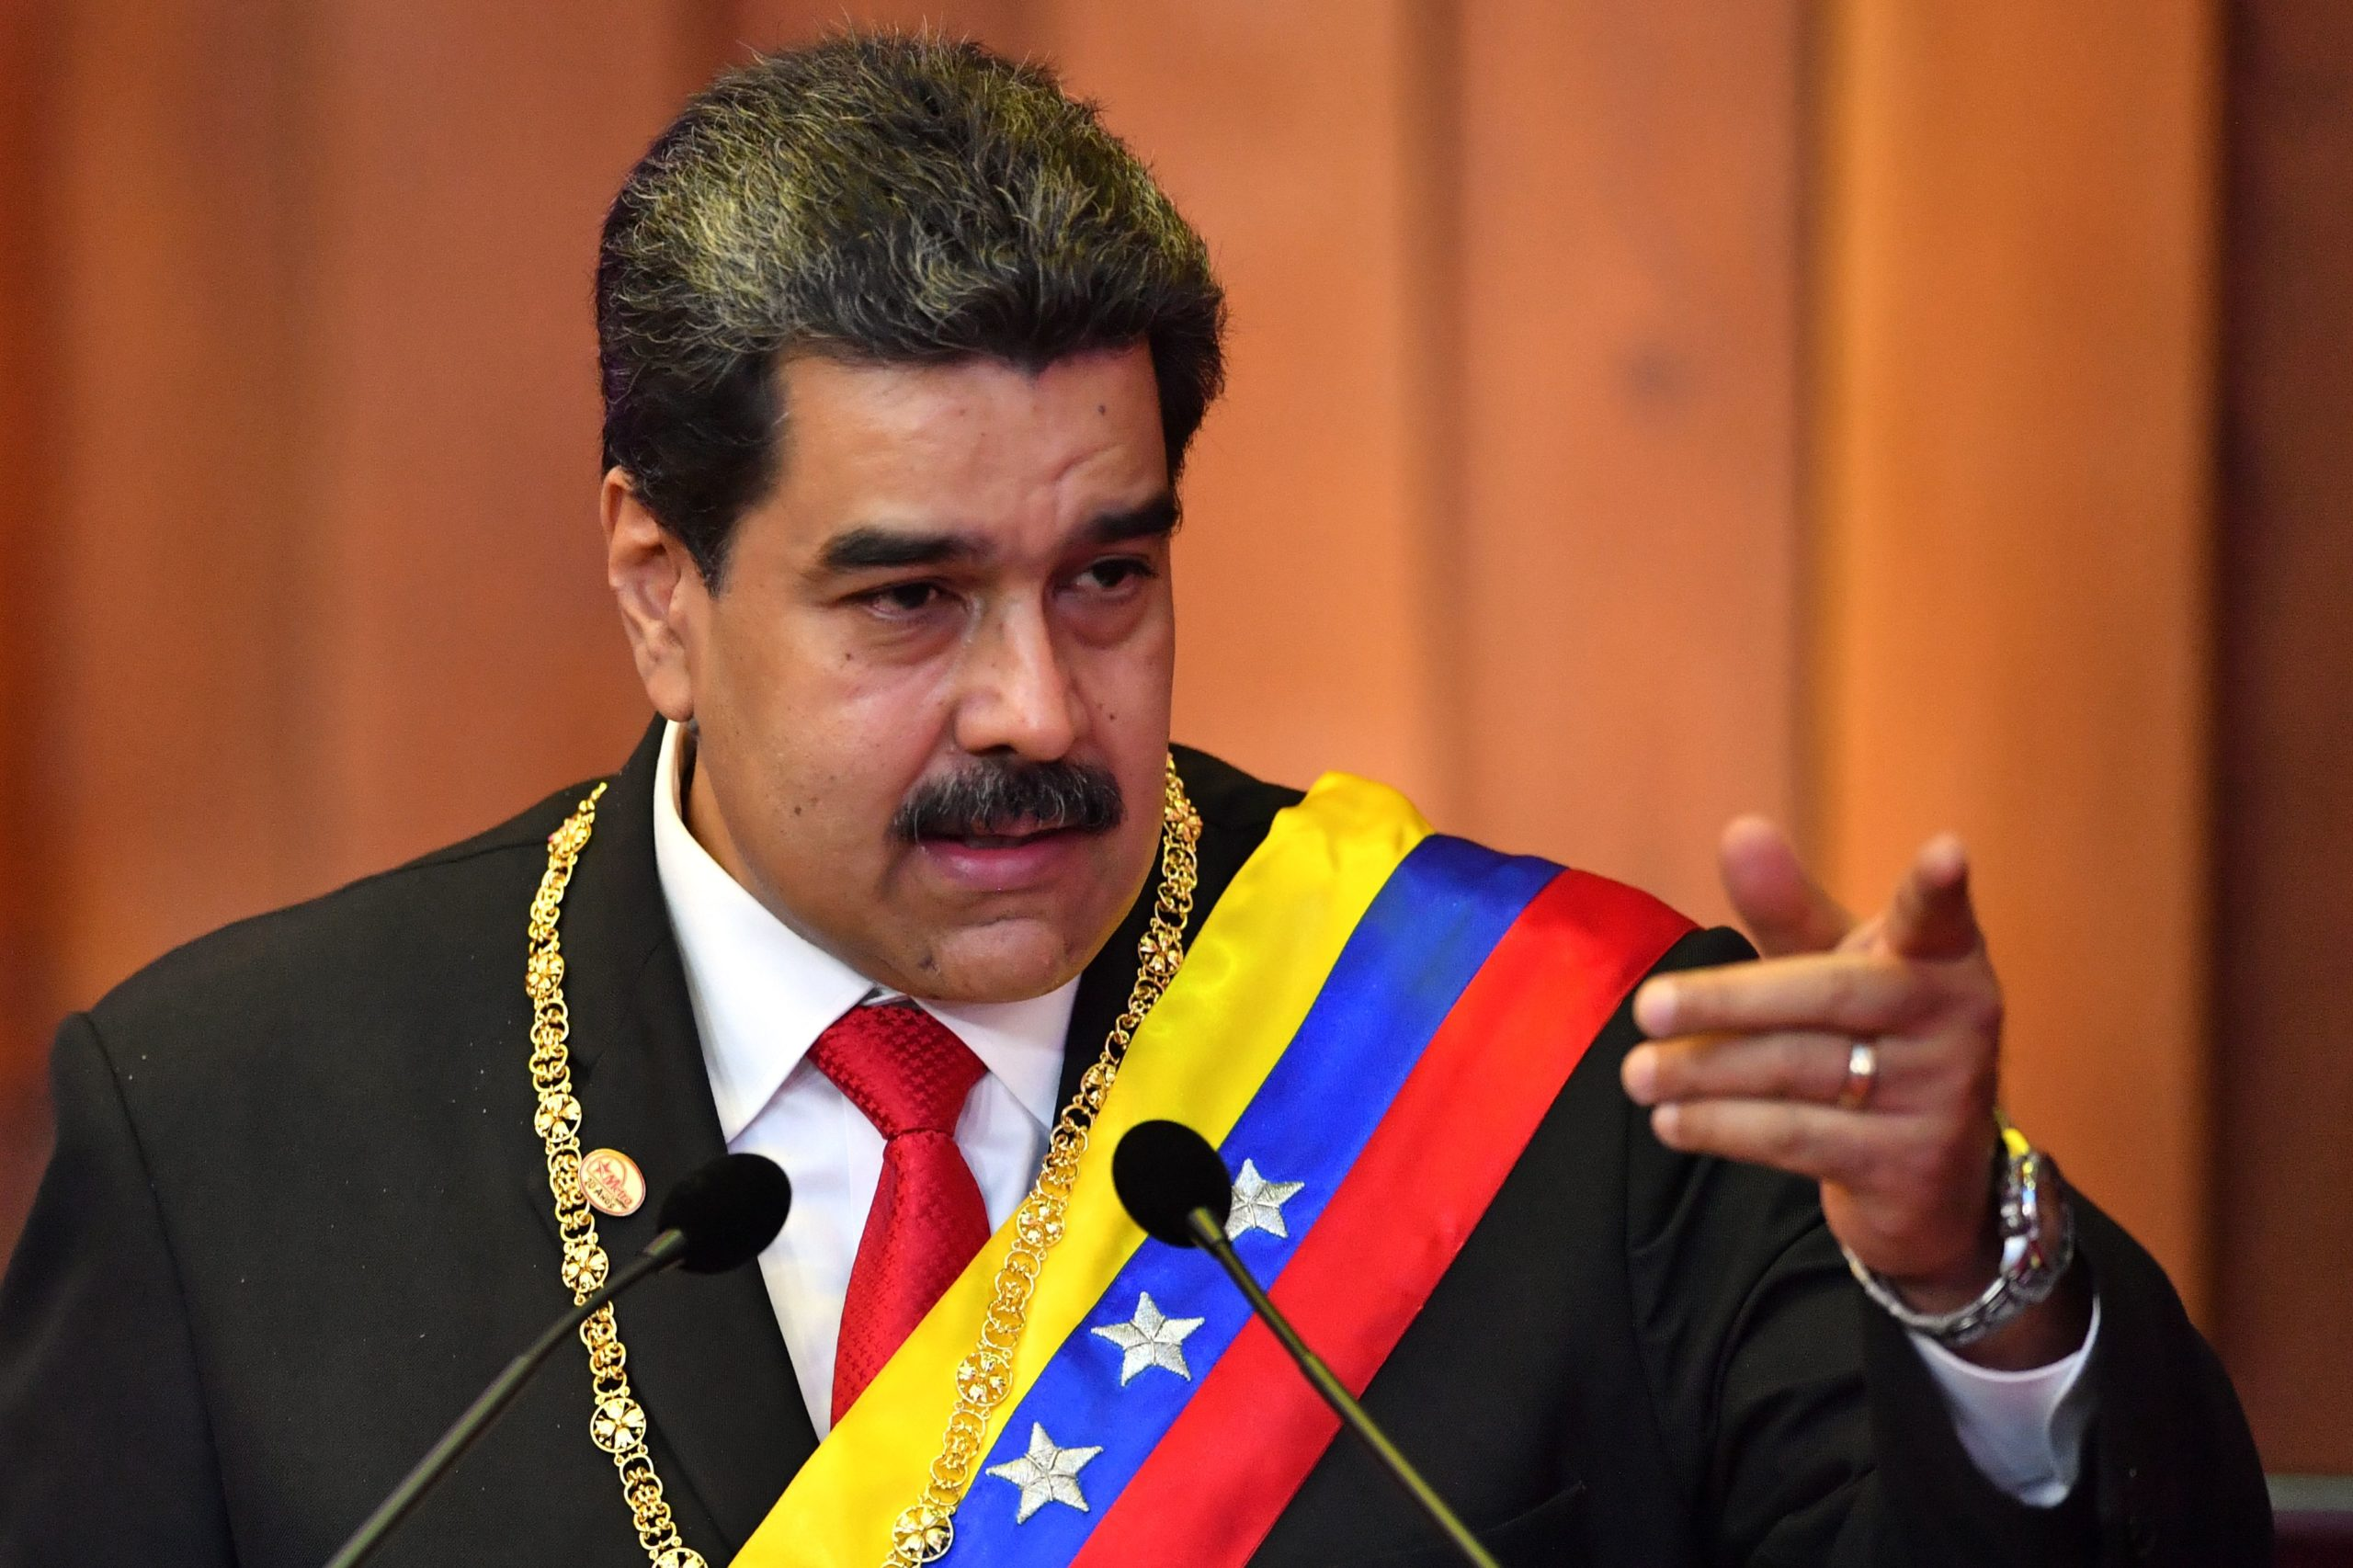 United States indicts Nicolás Maduro and other top Venezuelan leaders for drug trafficking